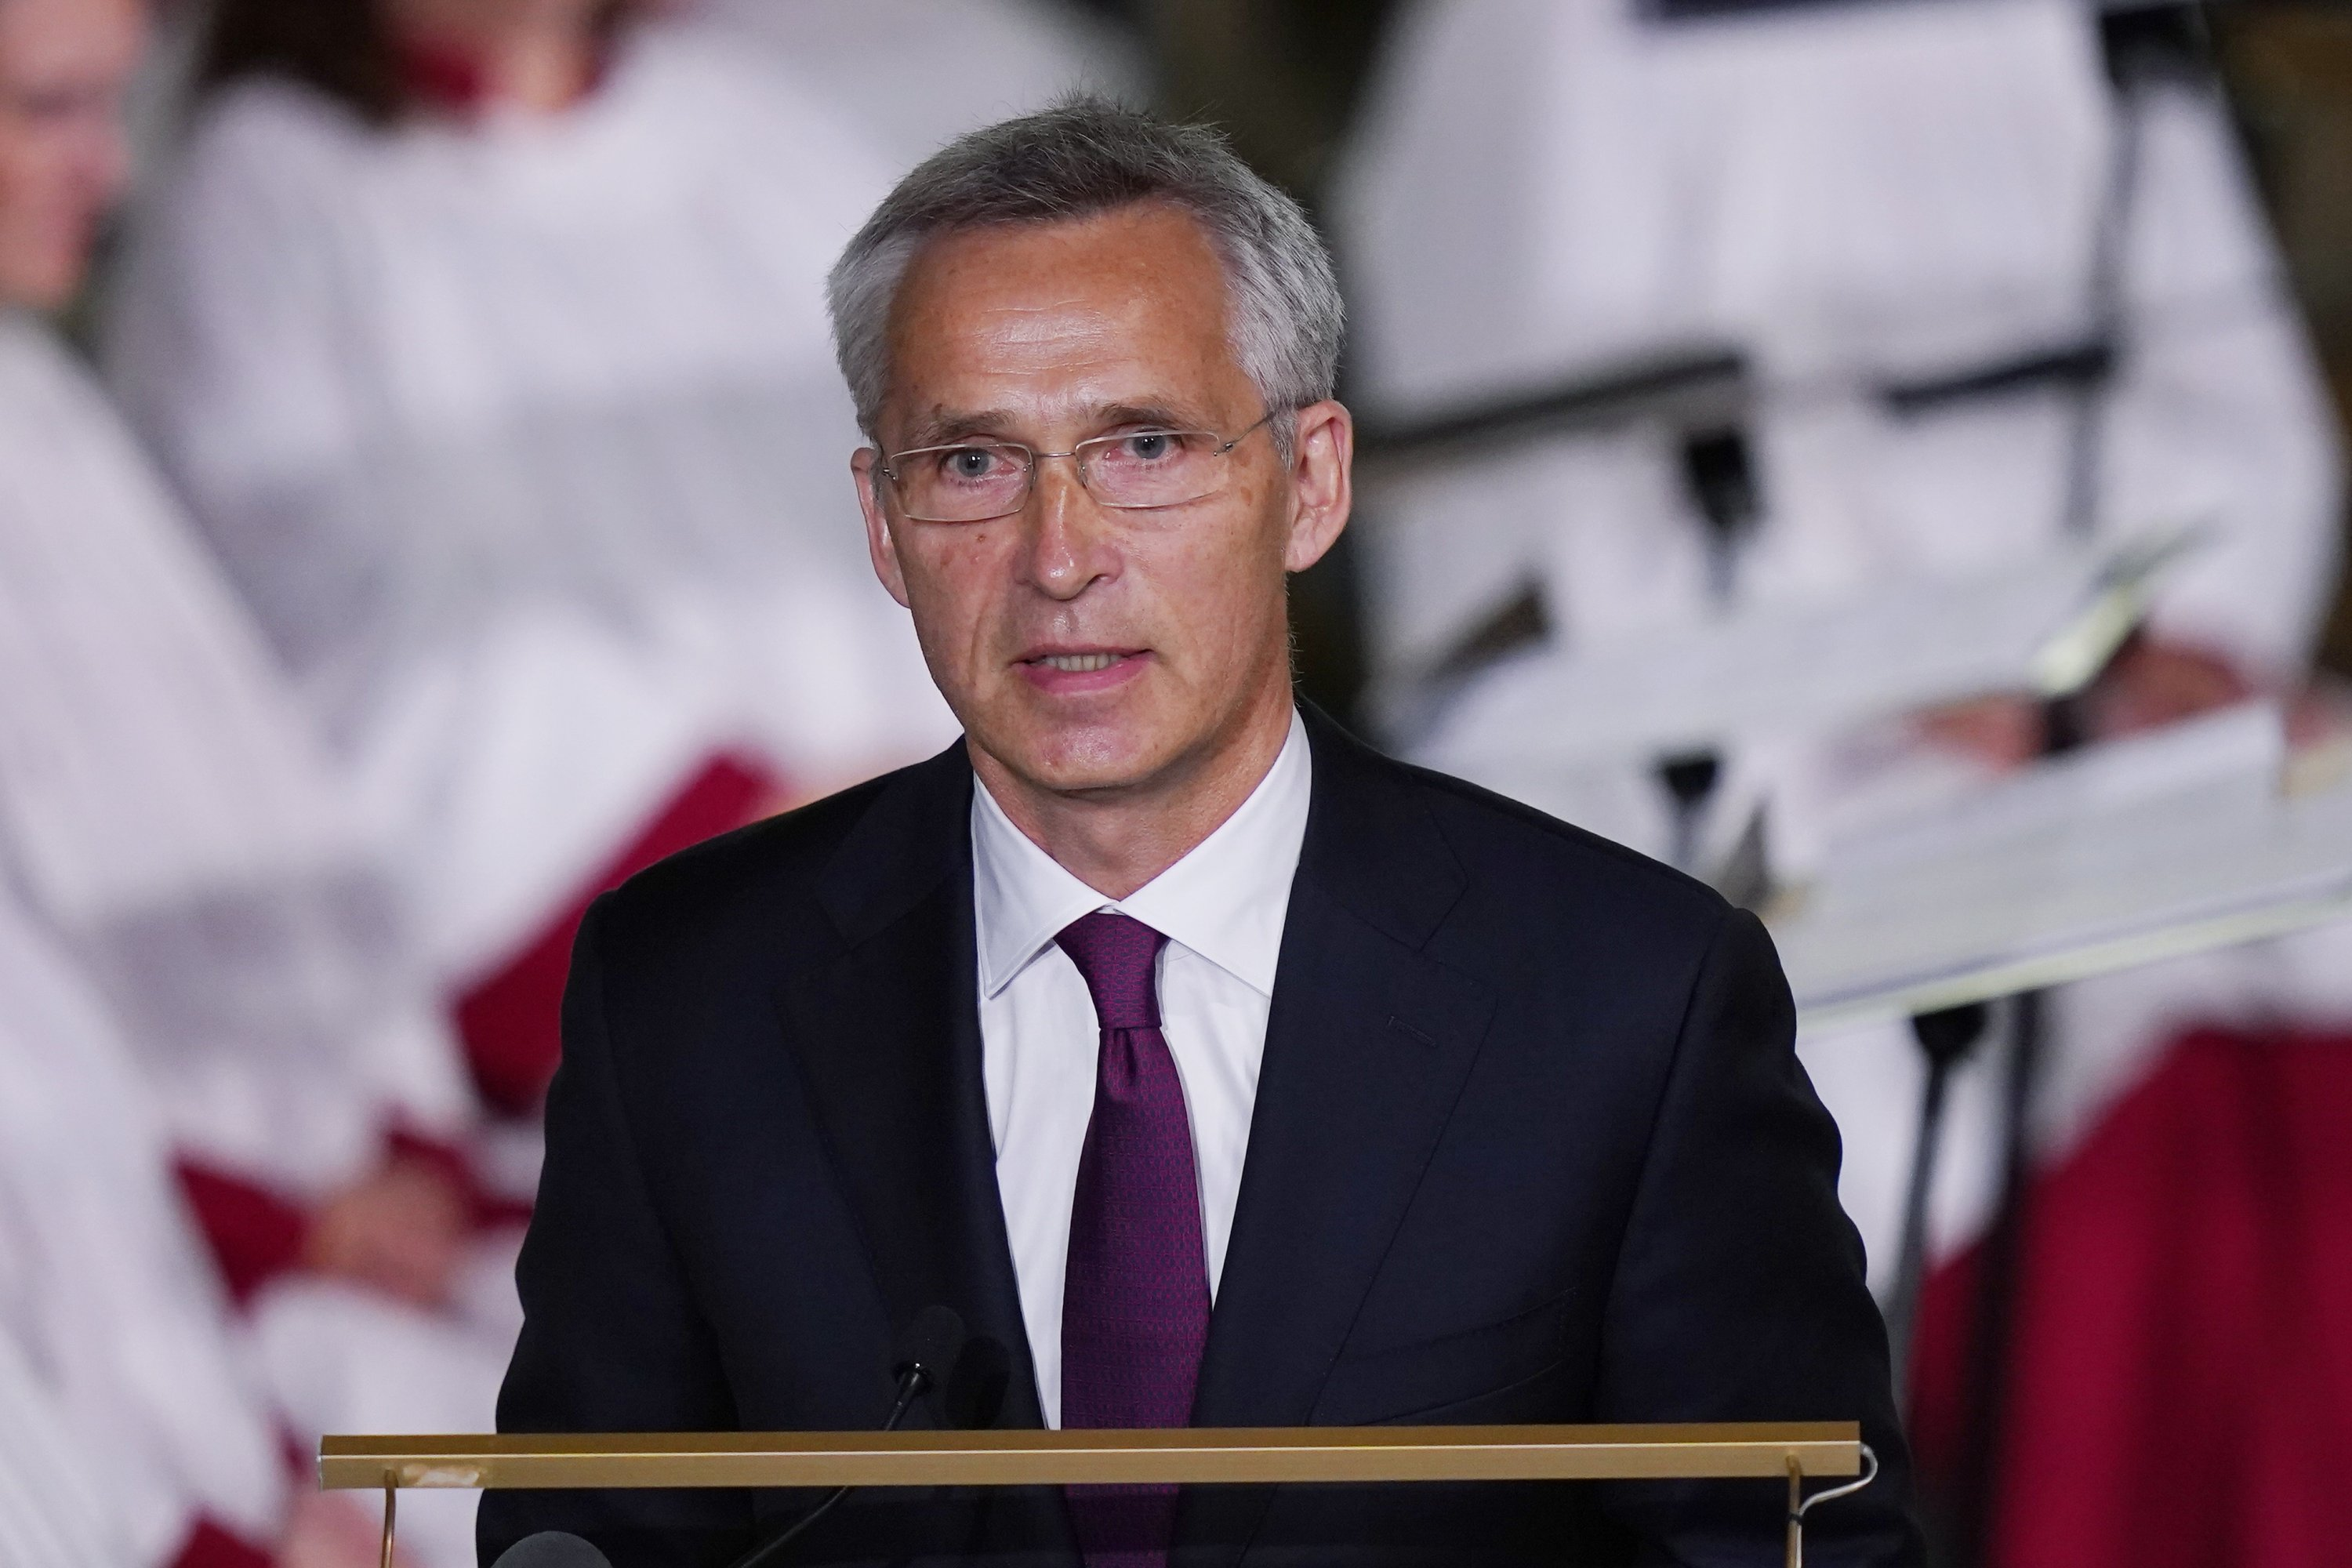 NATO Secretary General Jens Stoltenberg gives a speech in the Oslo Cathedral during a memorial service for the victims of the 2011 terrorist attacks, in Oslo, Norway, on July 22, 2021. (EPA Photo)